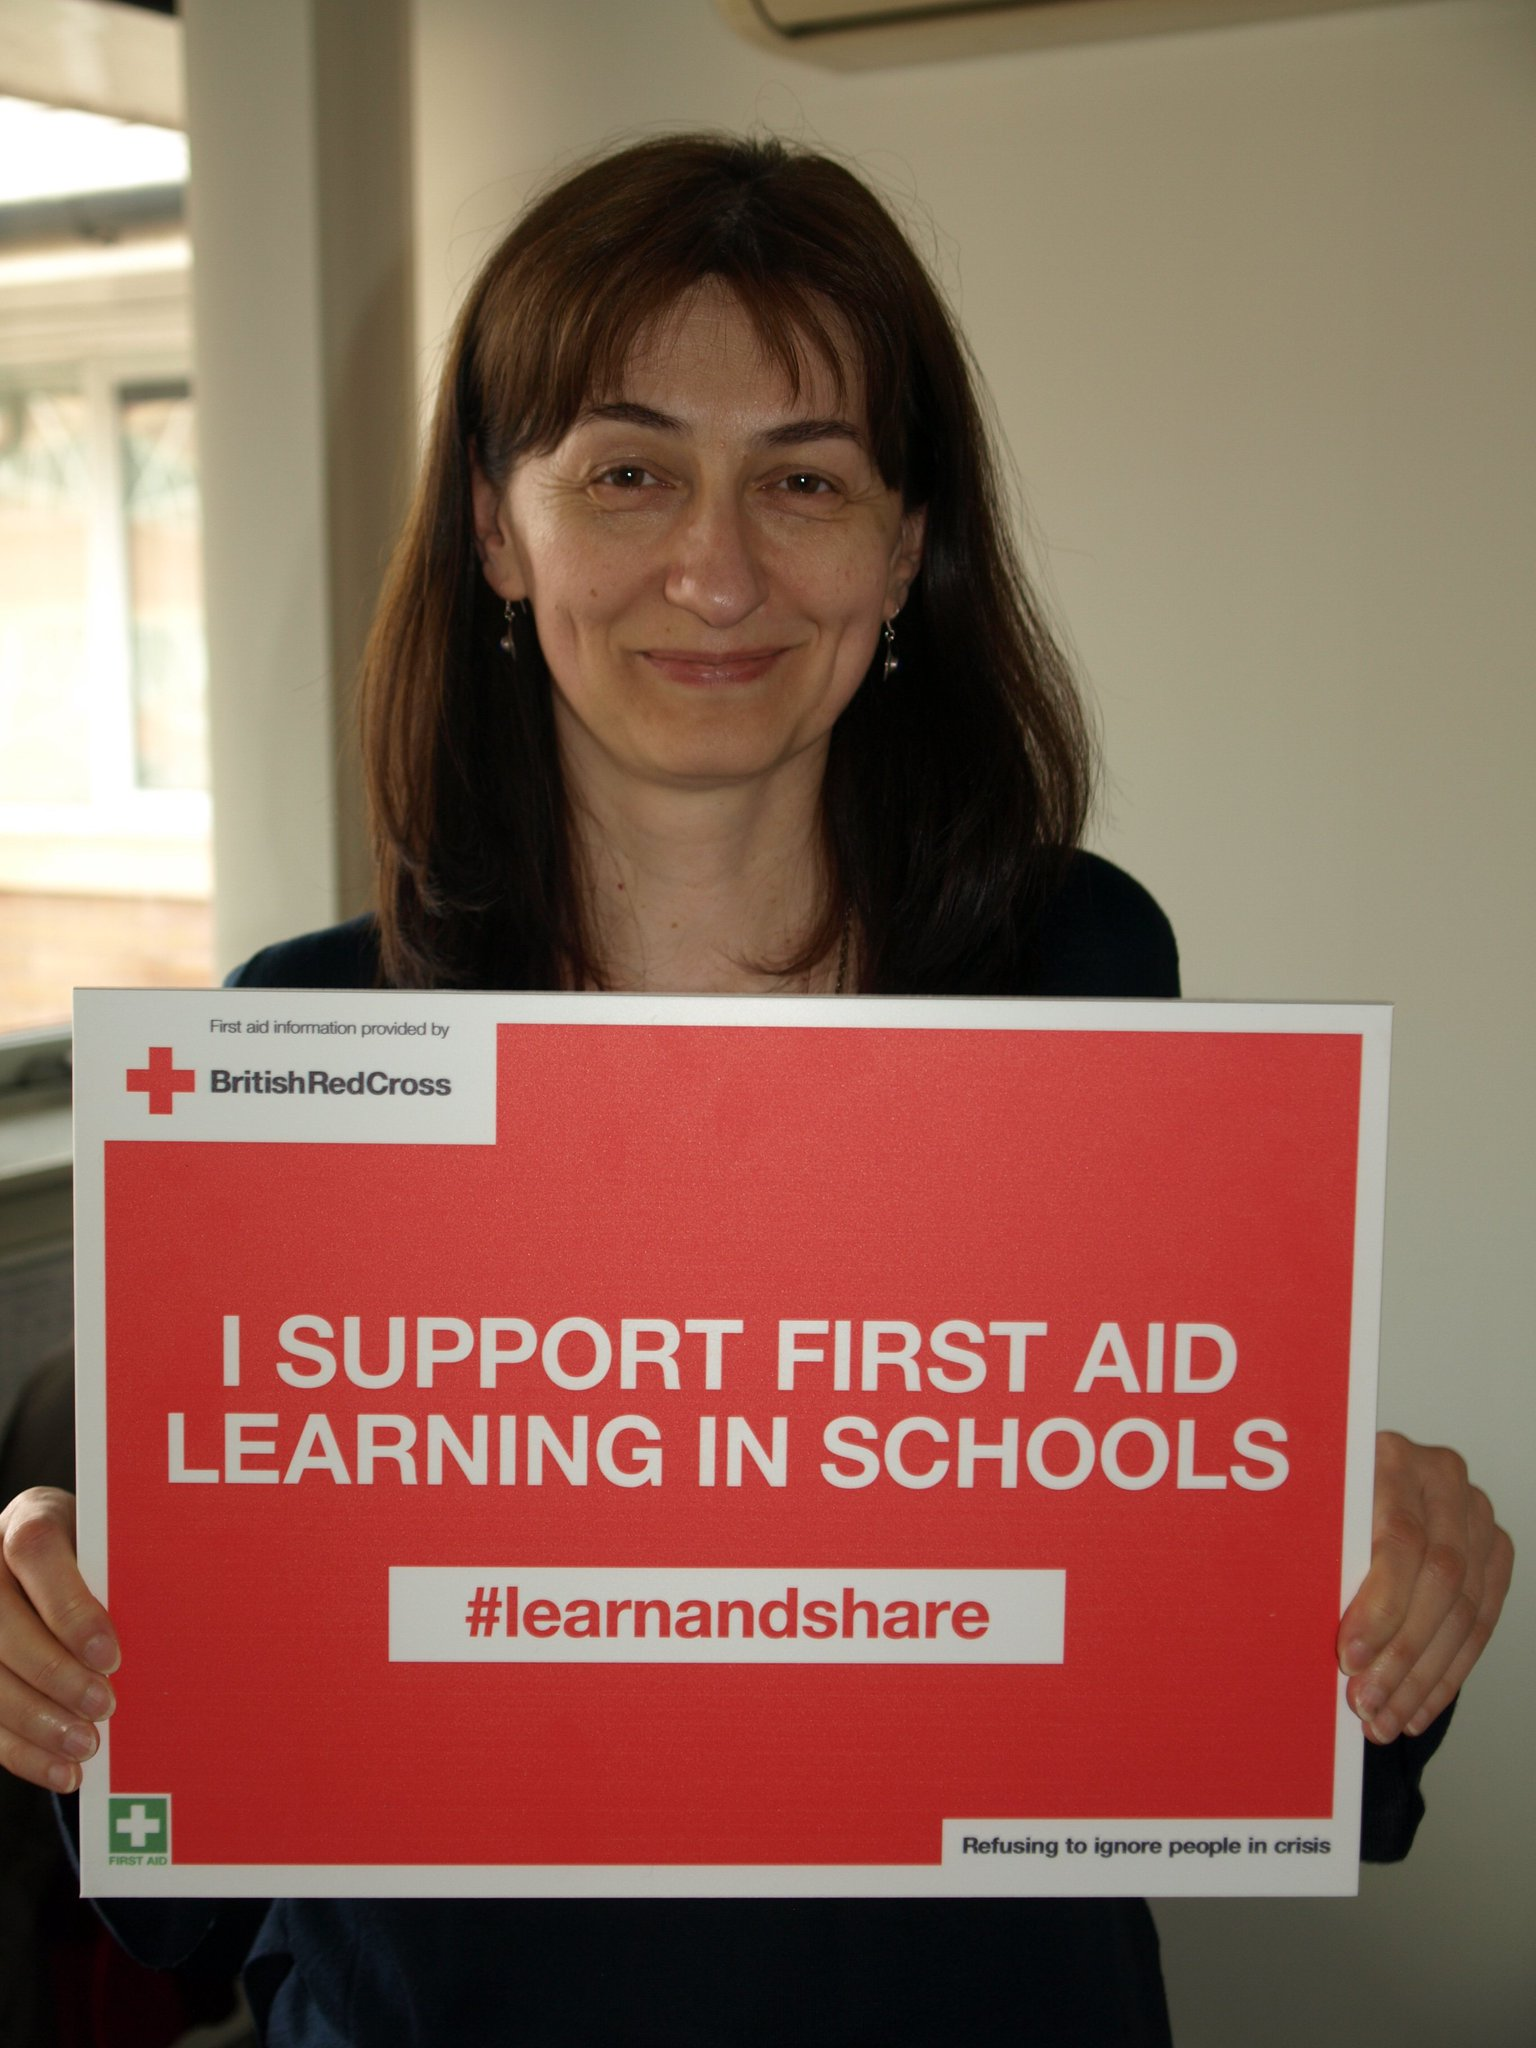 Stanislava Sofrenic supports first aid learning in schools in Wales. #lifesavingskills are essential so  #learnandshare with @RedCrossWales https://t.co/lP2VuNsapB